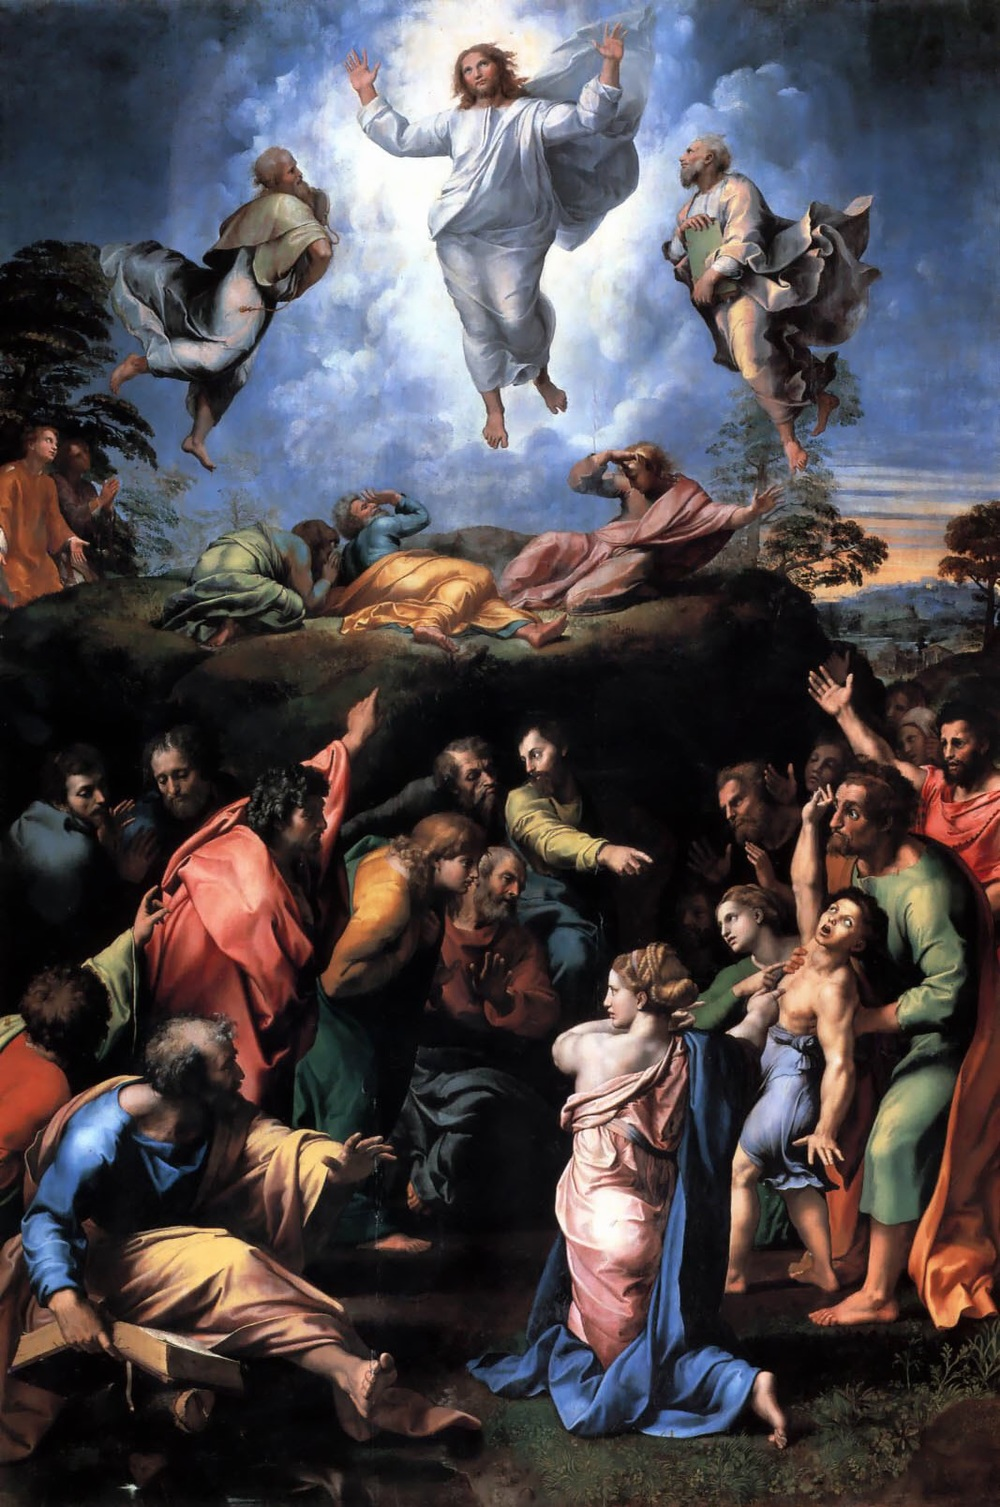 The Transfiguration by Raphel: Jesus Transfigured while Disciples Powerless